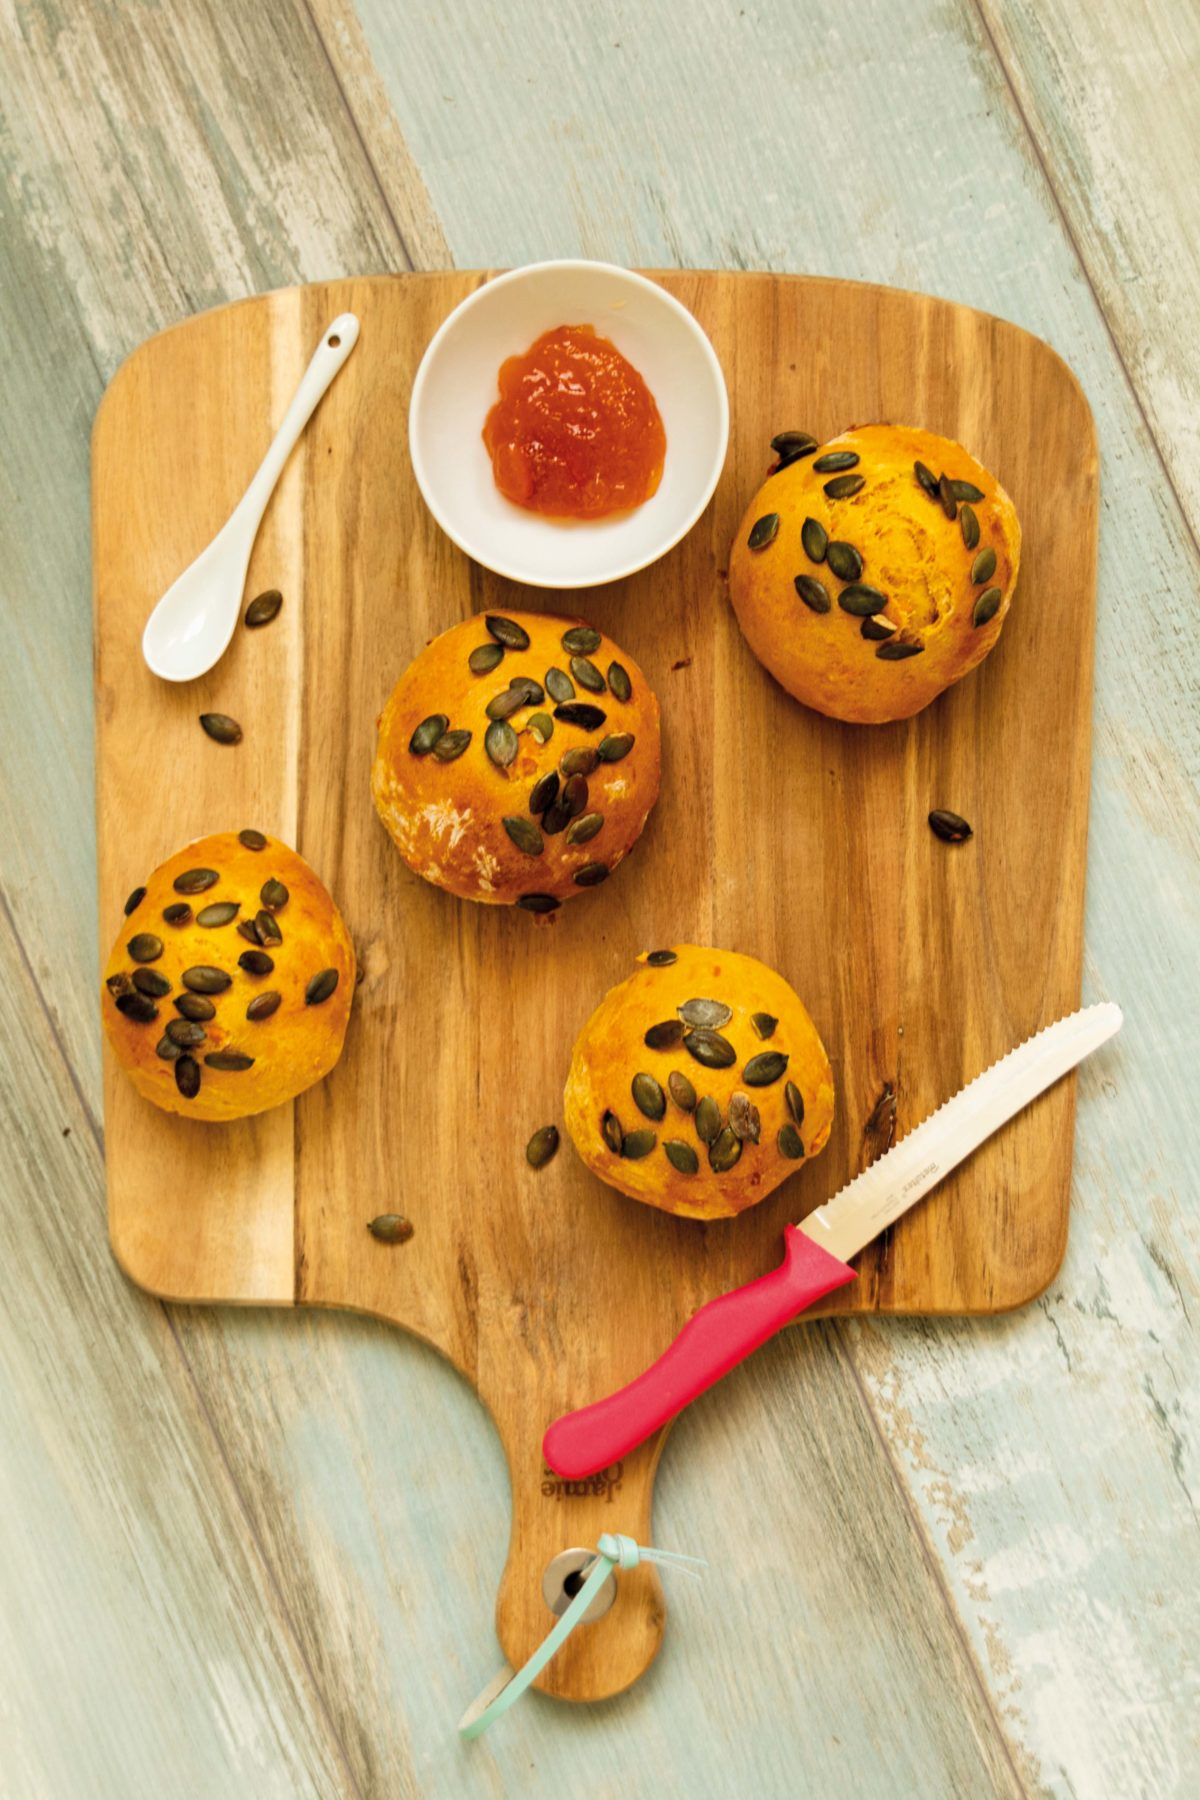 Kürbisbrötchen für das Herbst-Frühstück // Pumpkin Buns for Breakfast by https://babyrockmyday.com/kuerbisbroetchen